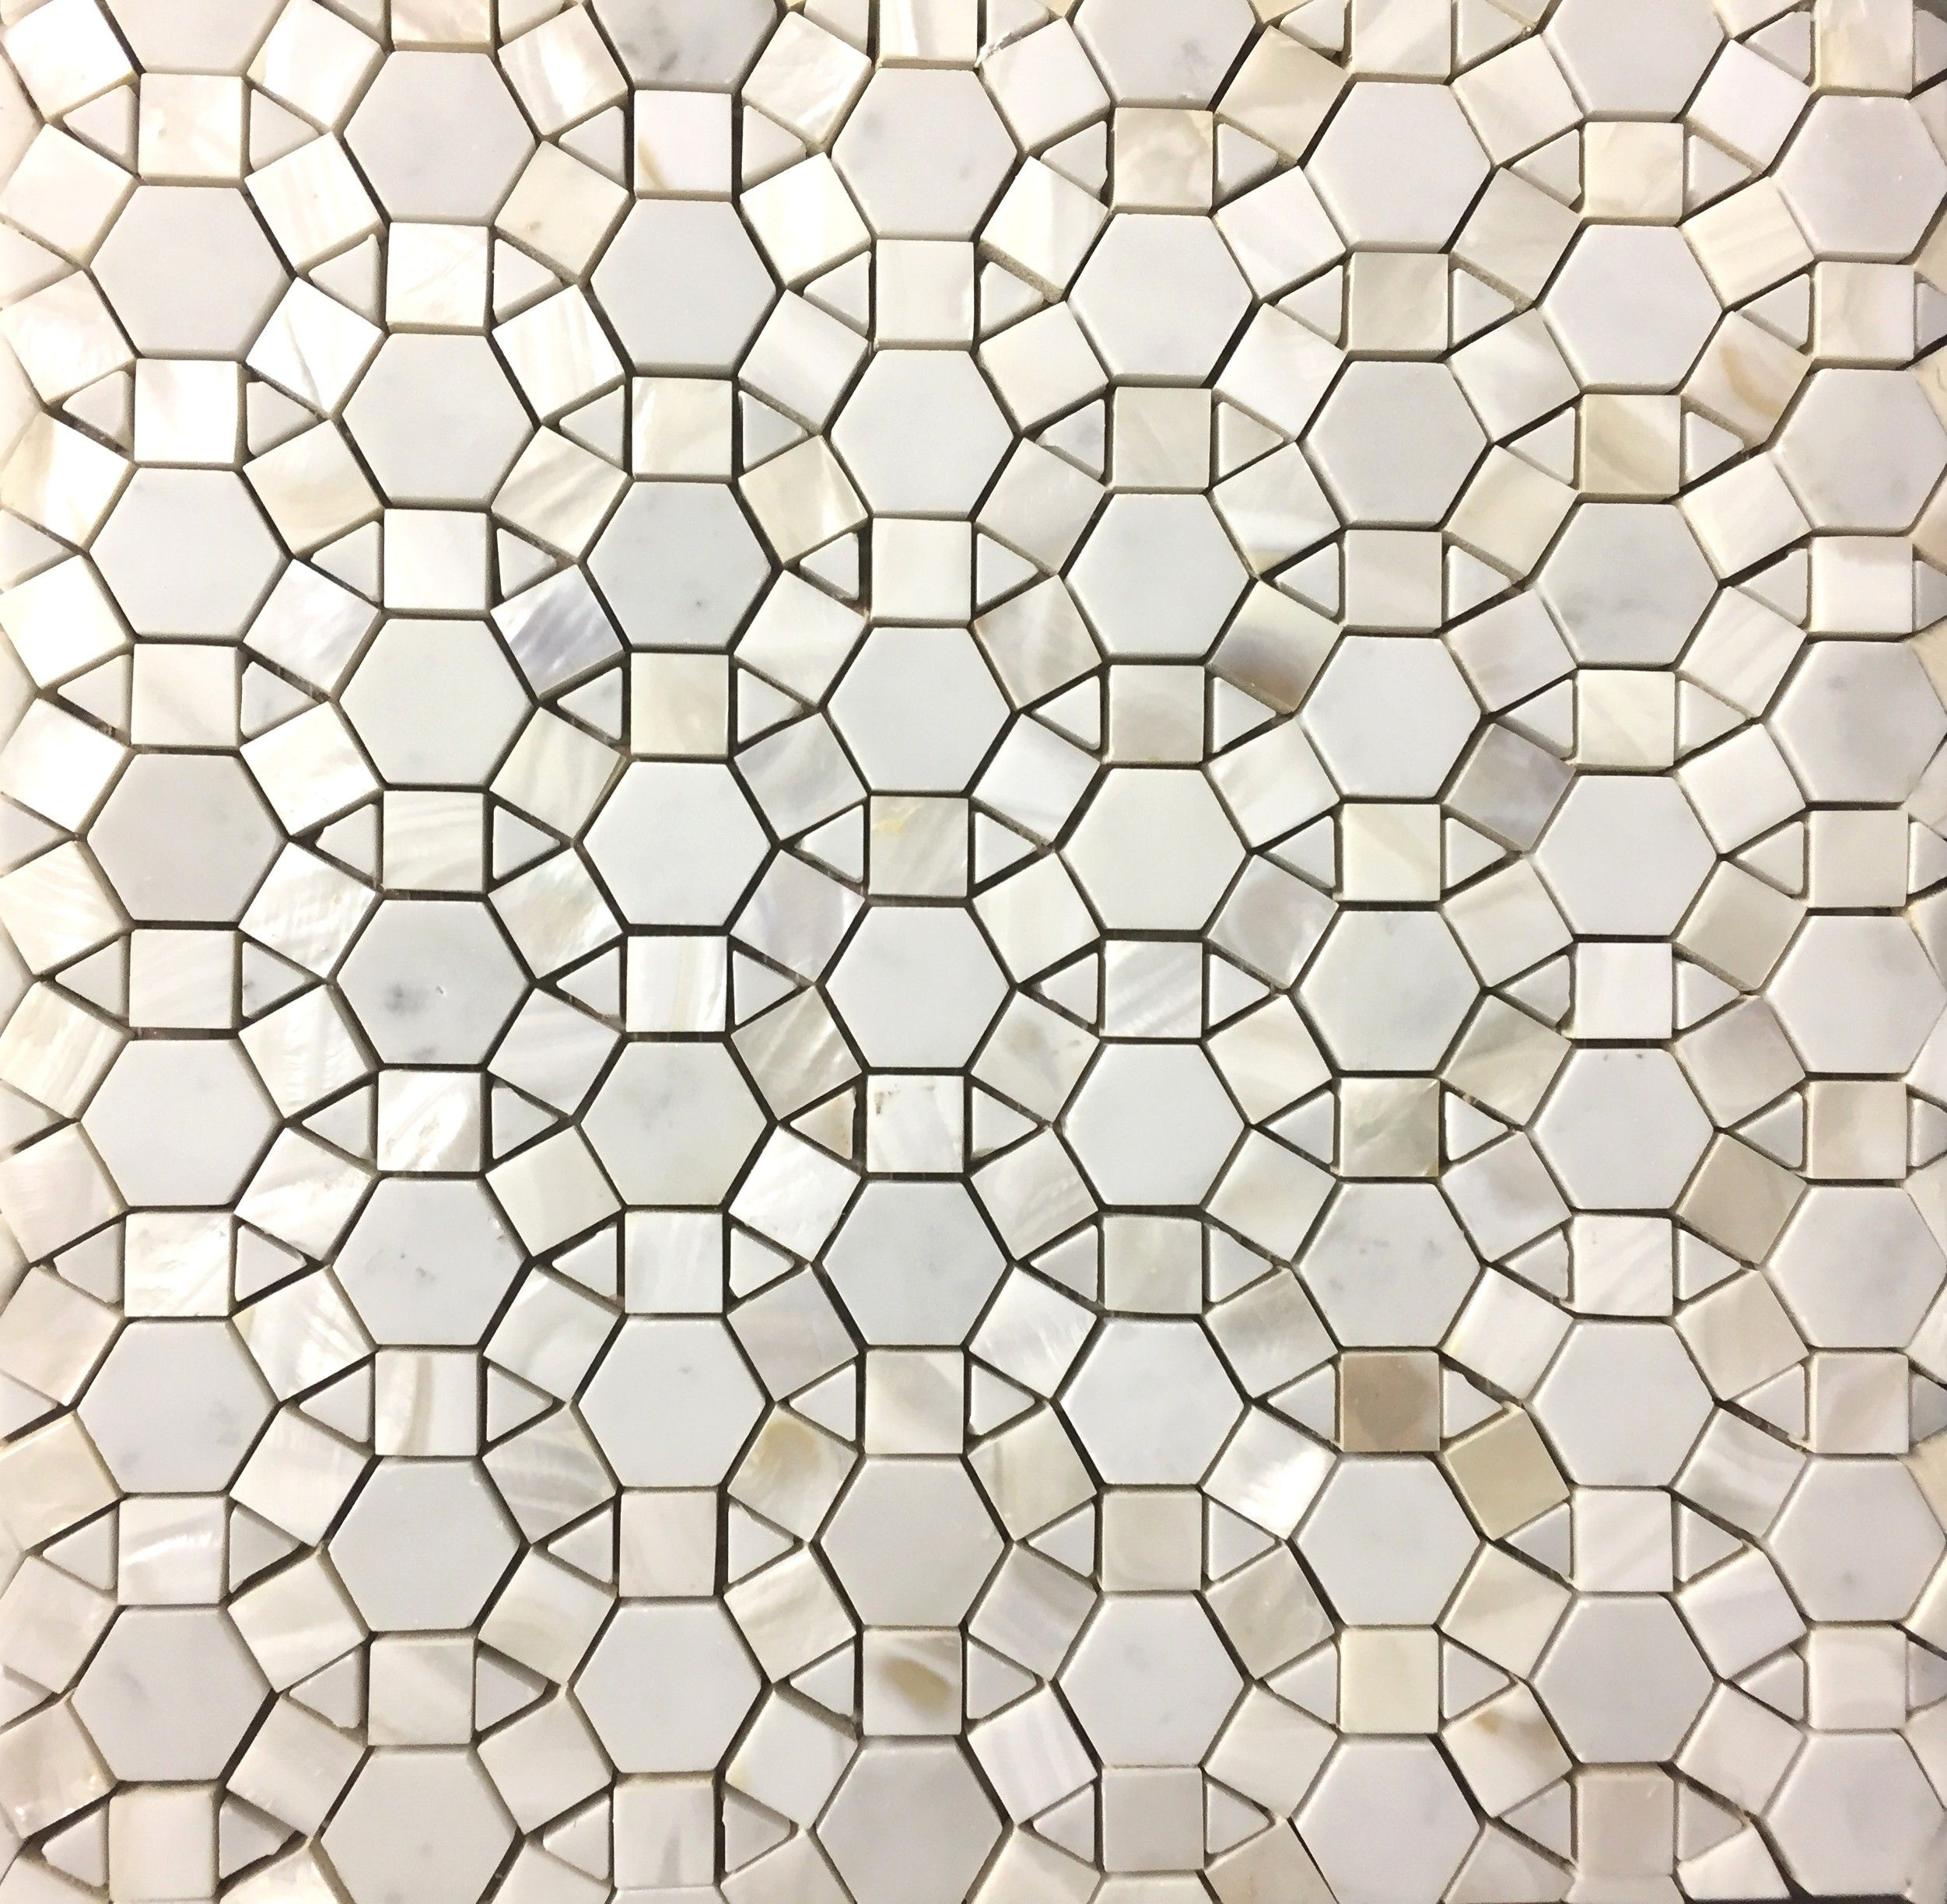 Bloom Water Jet Mosaic Tile In White Shell And Italian Carrara